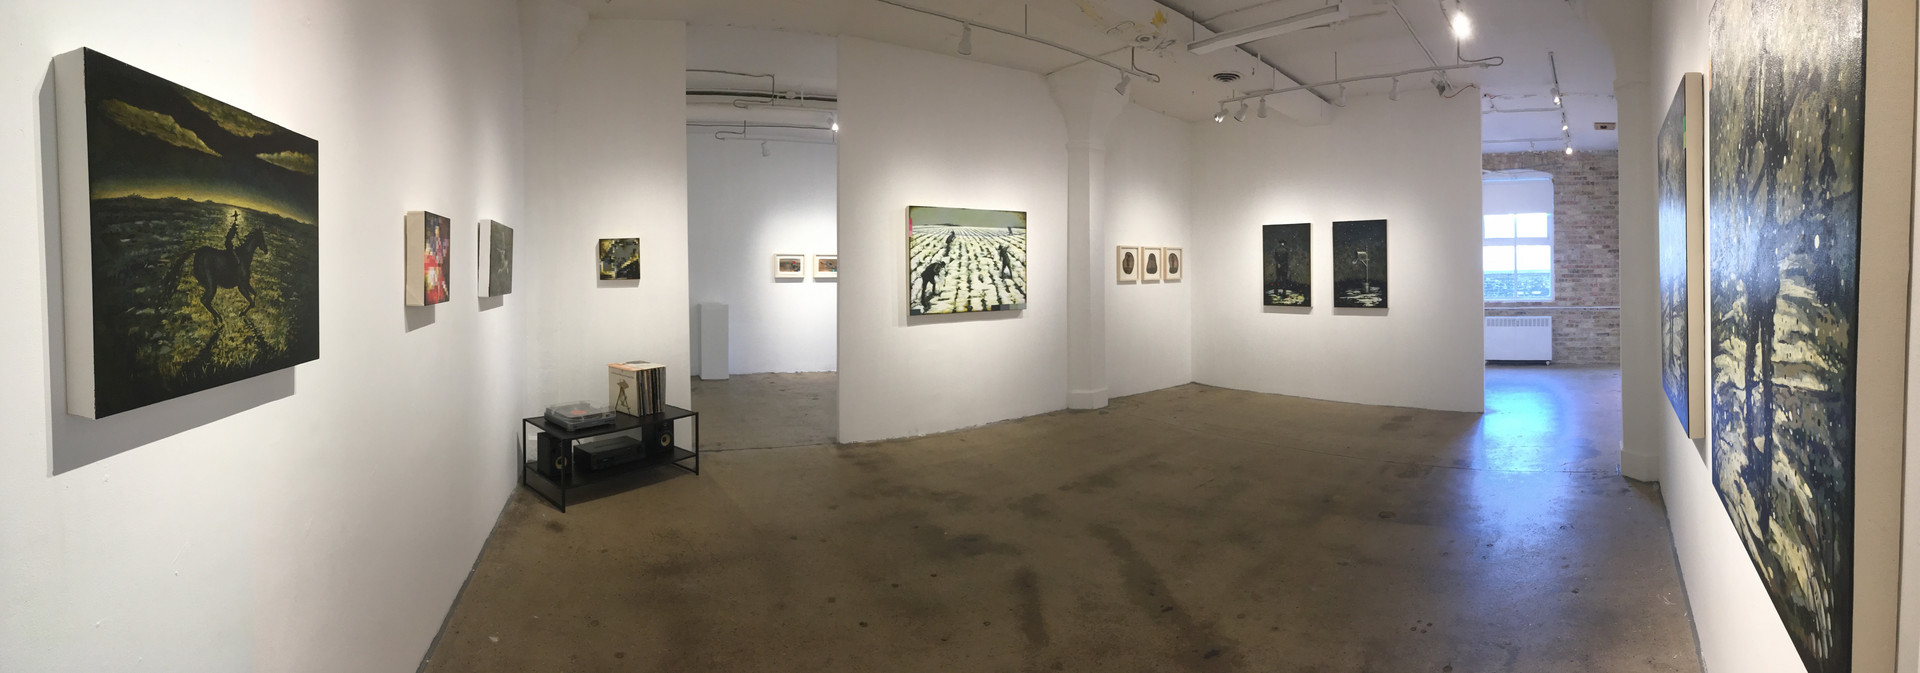 main gallery installation view